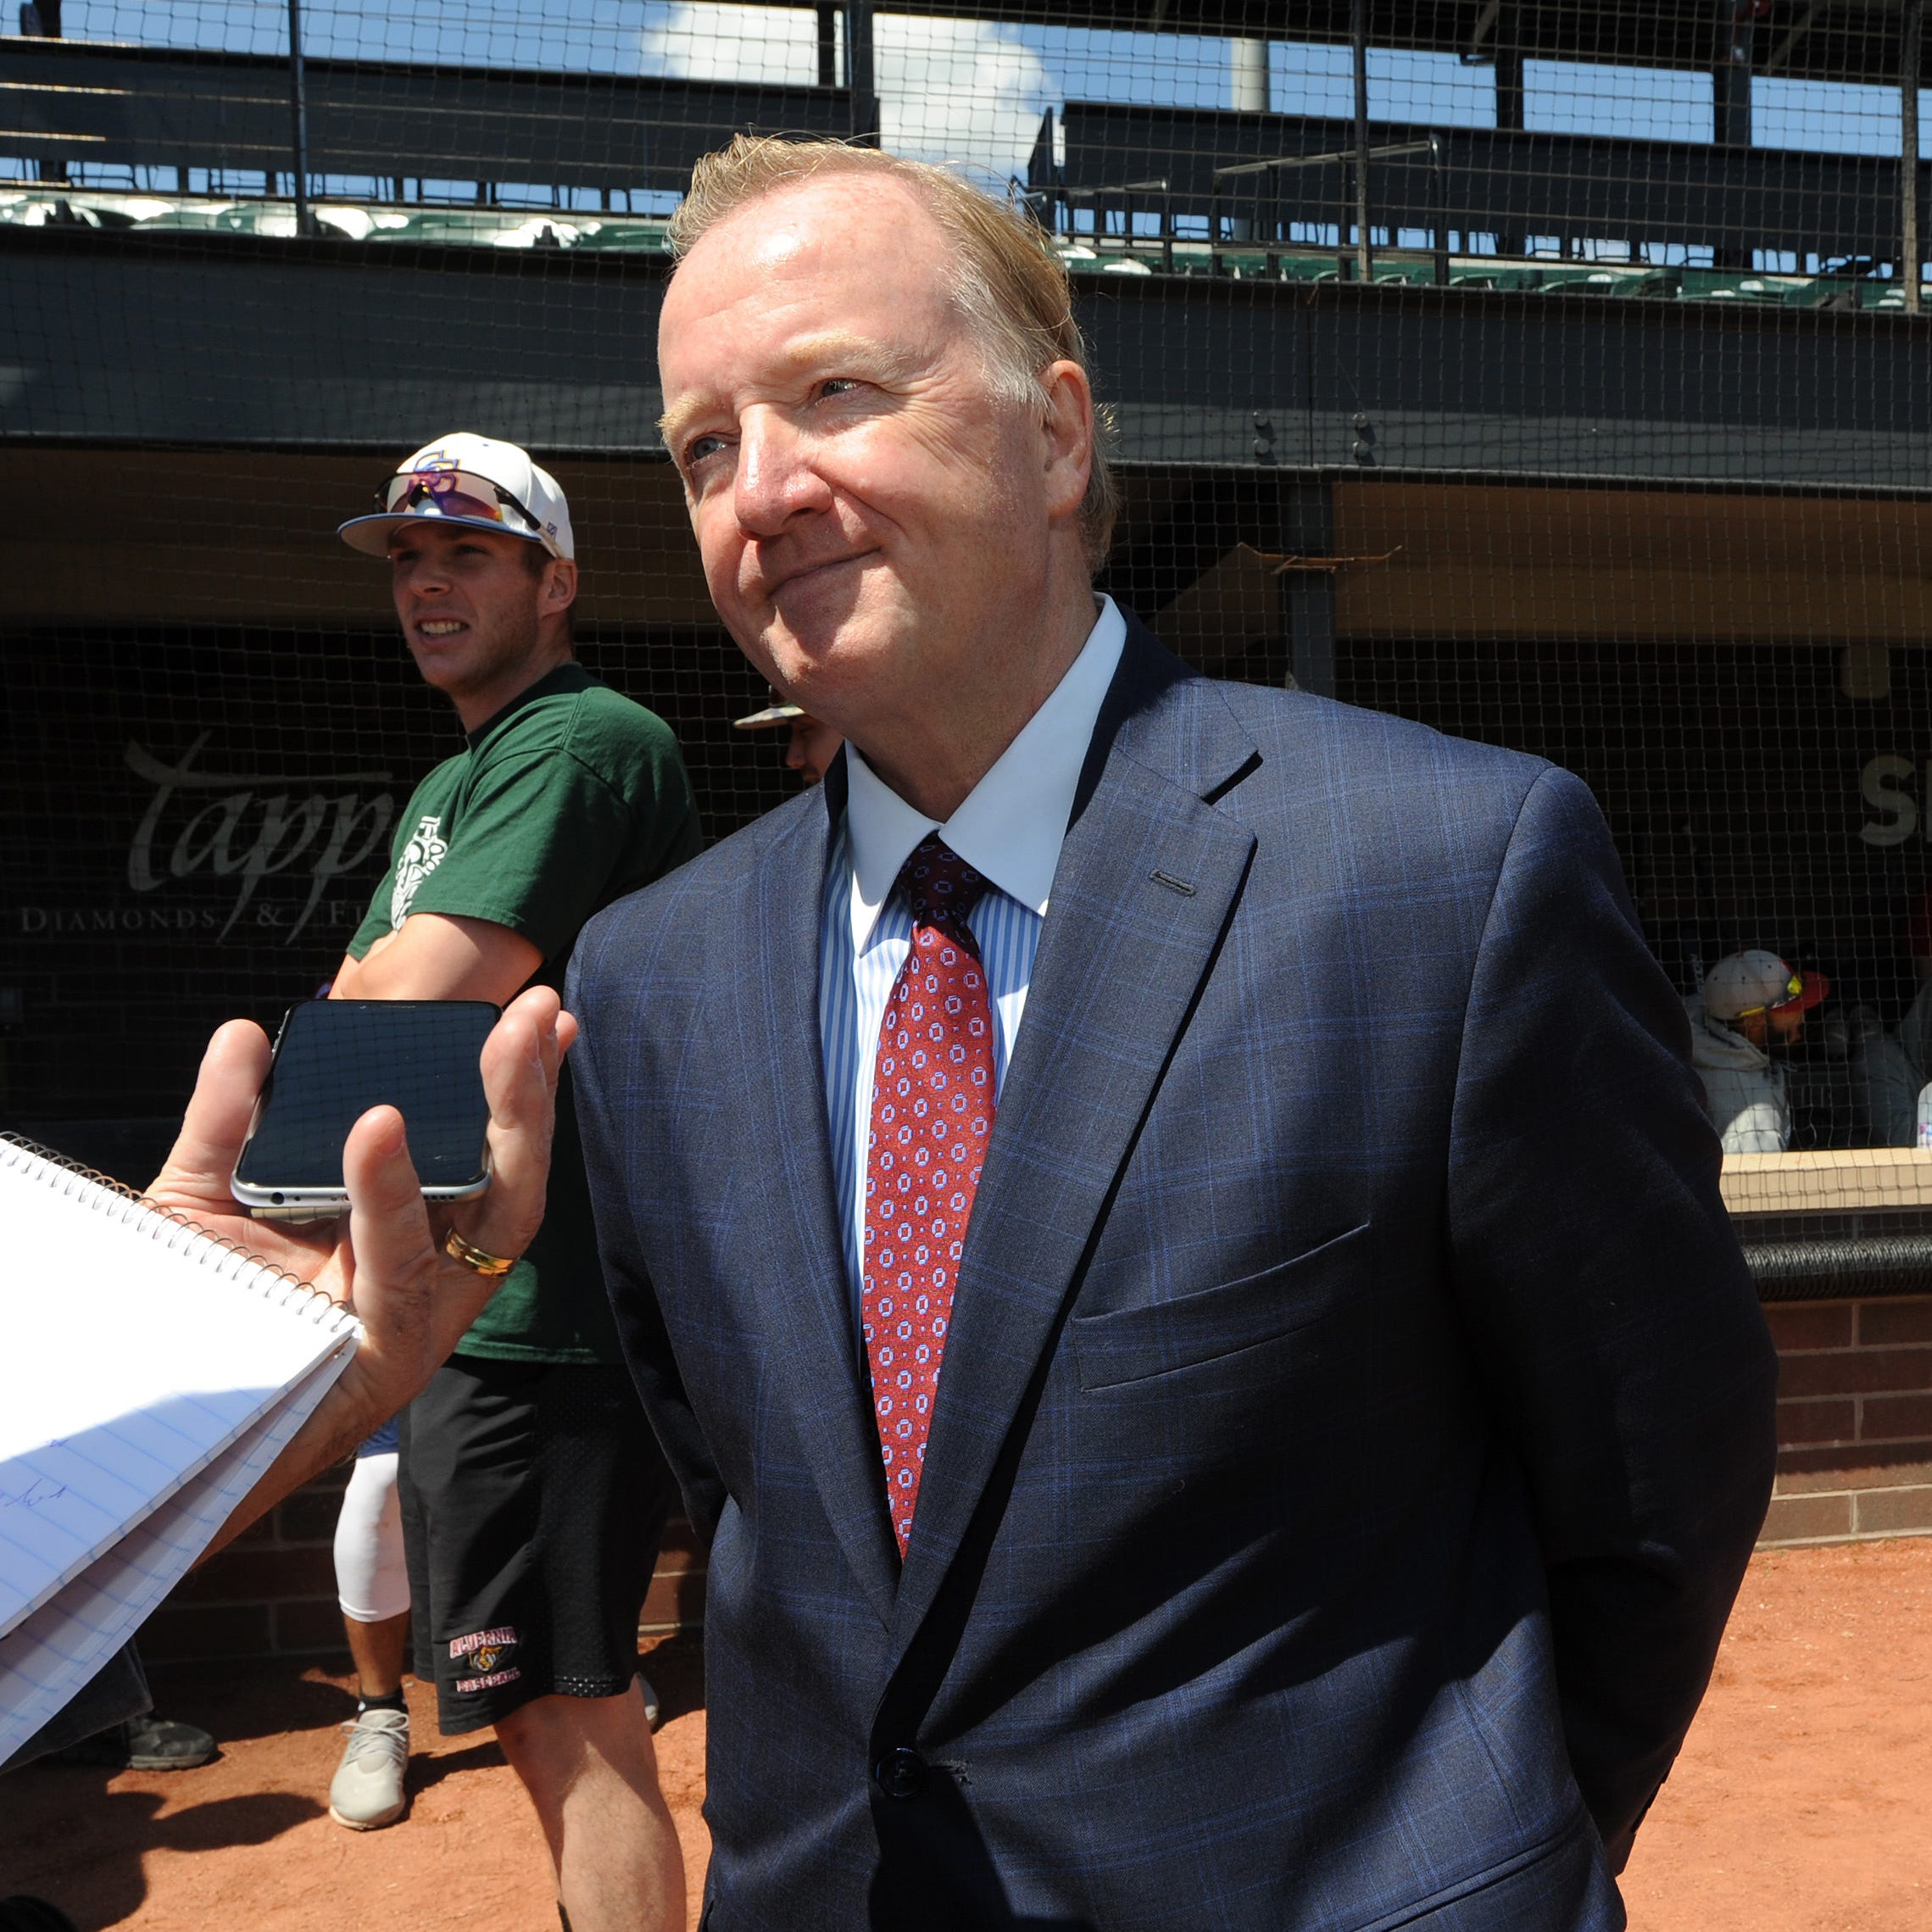 USPBL plans second stadium, maybe in West Michigan, by Opening Day 2020